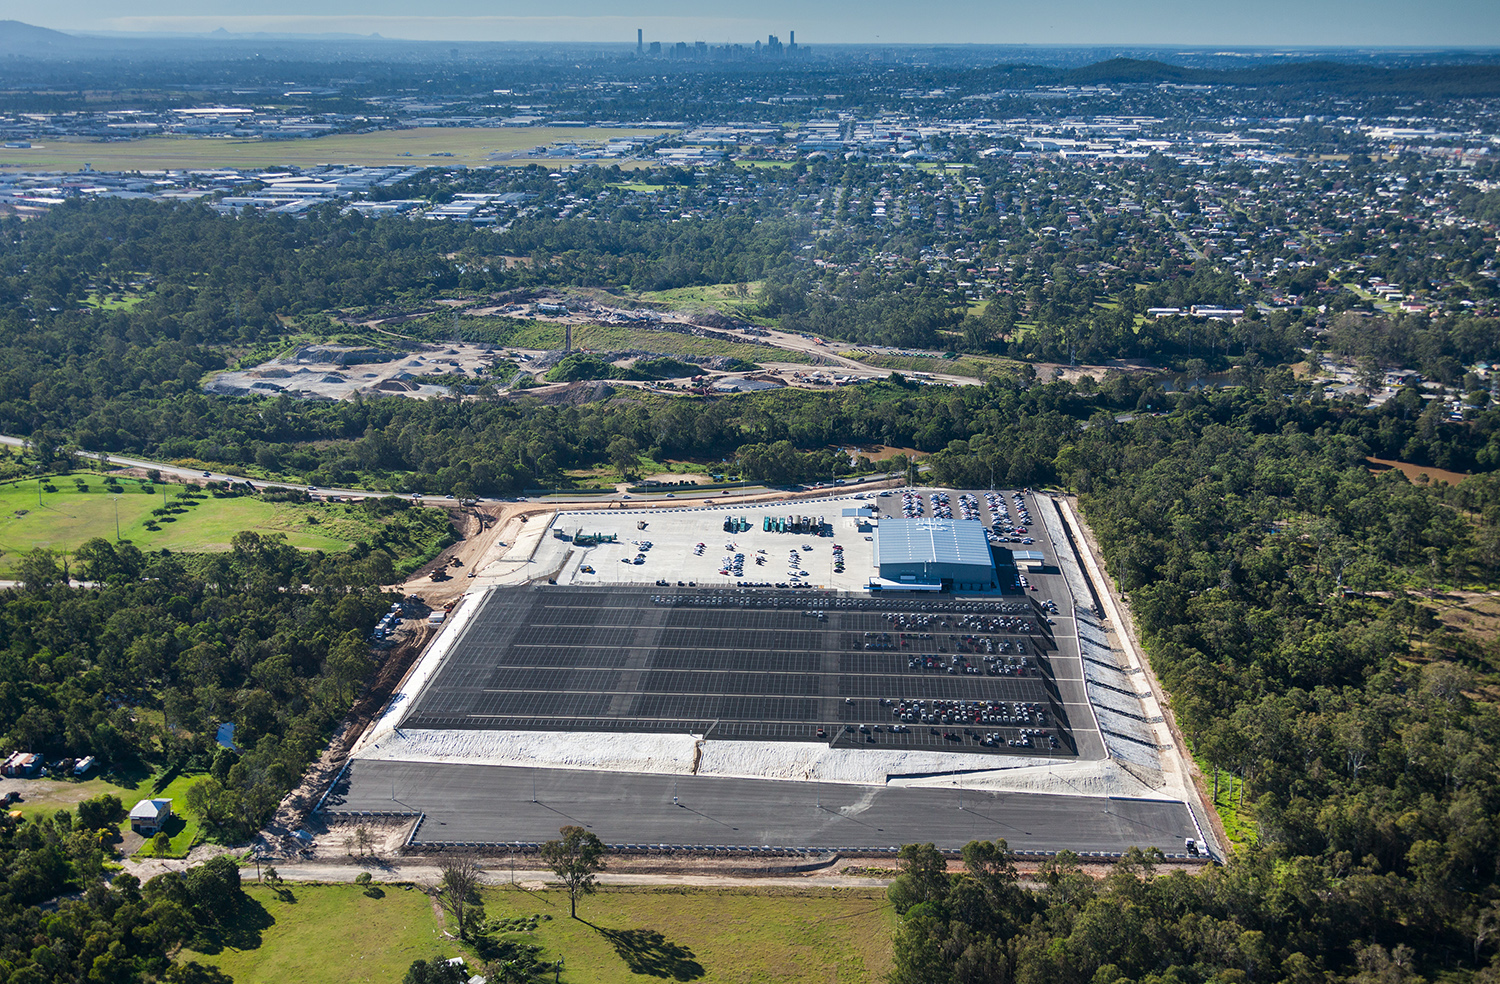 Aerial view of PrixCar Willawong